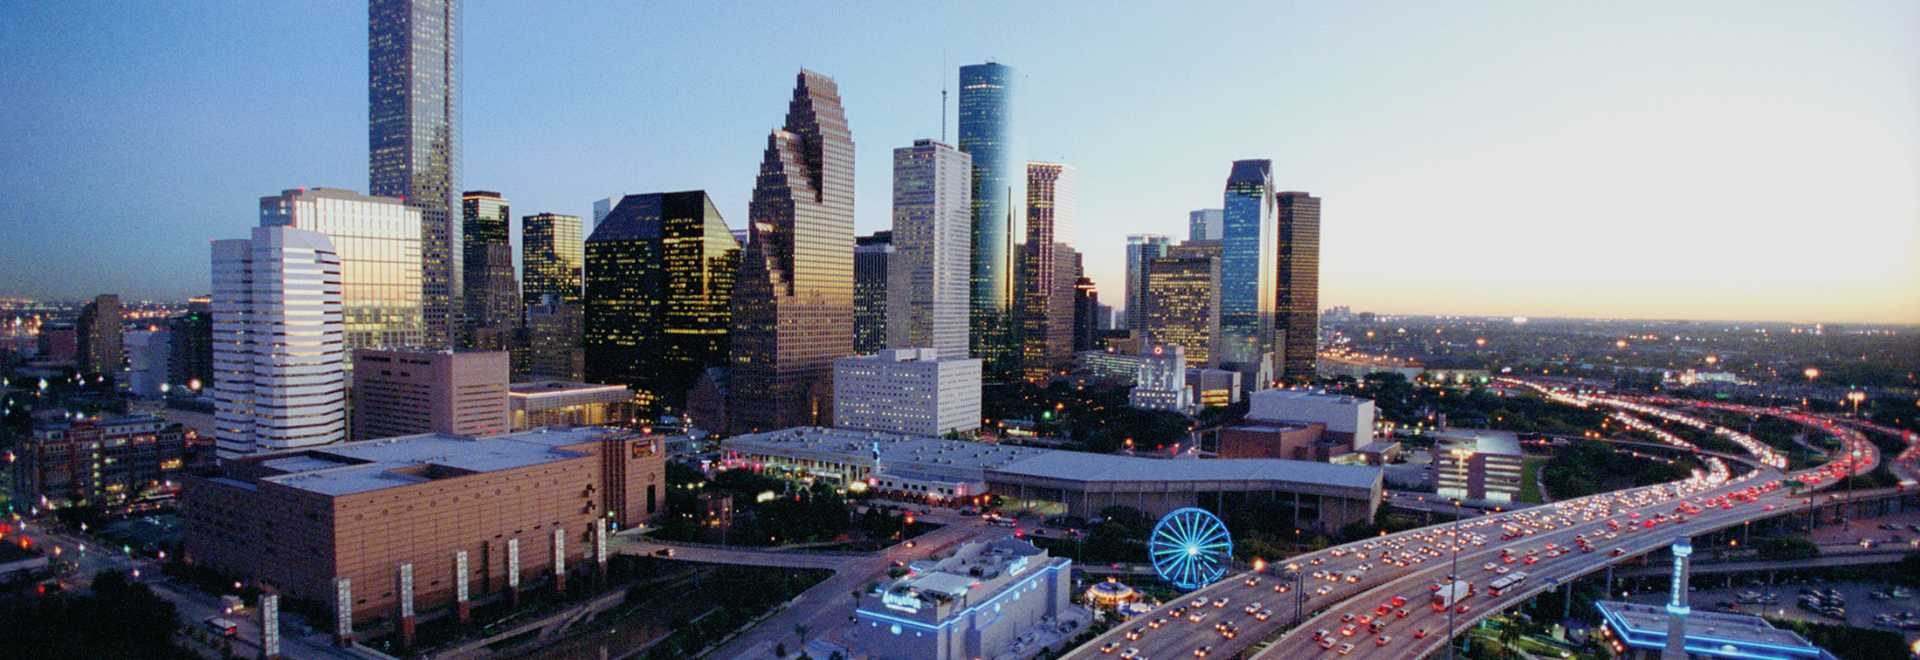 things to do in downtown houston houston attractions